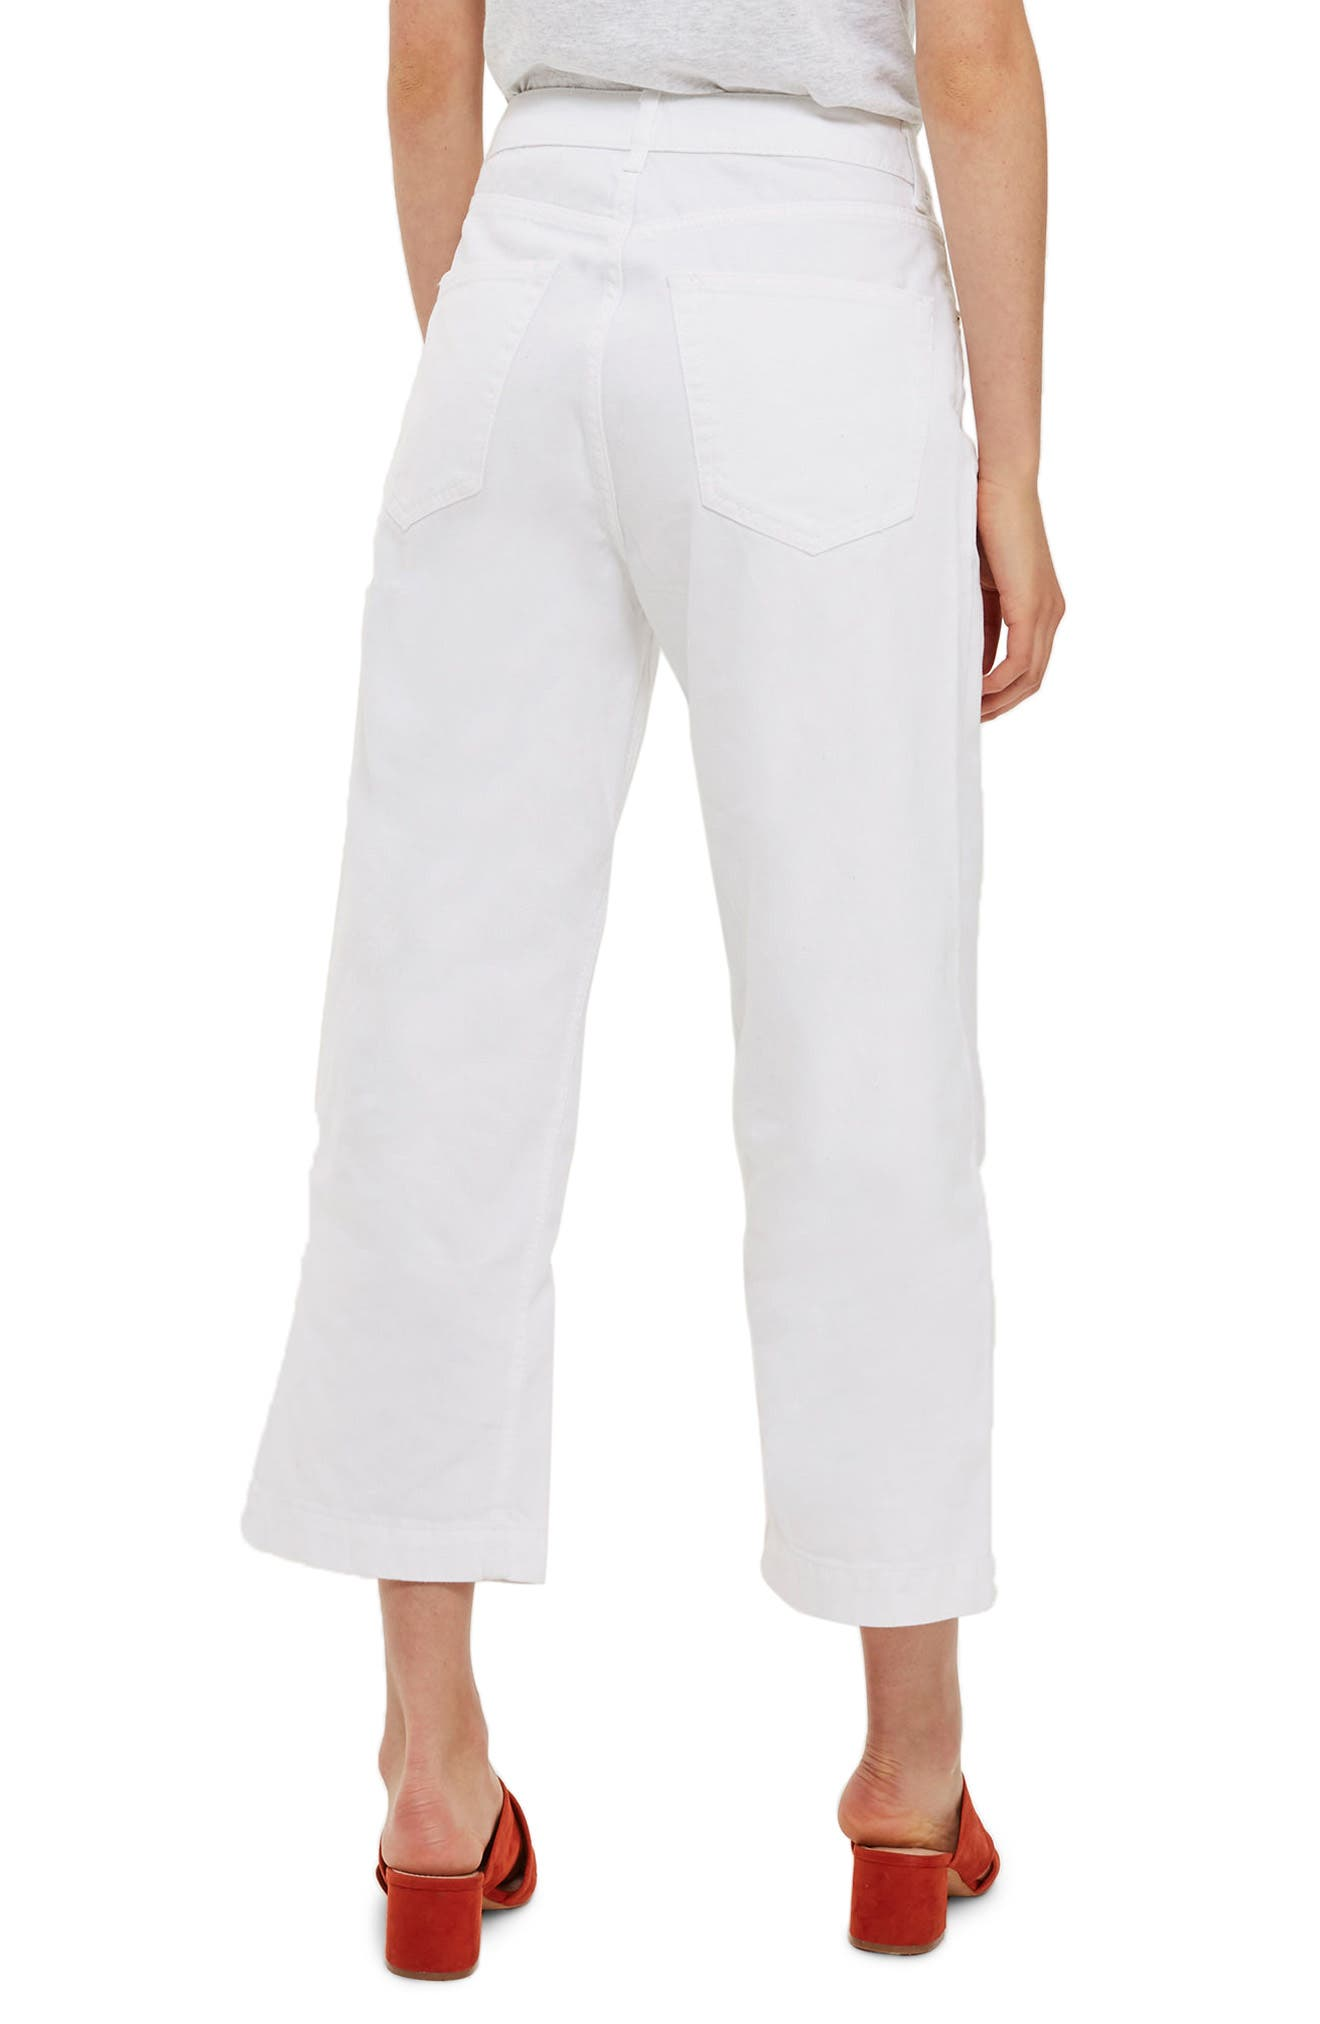 TOPSHOP,                             Cropped Wide Leg Jeans,                             Alternate thumbnail 2, color,                             100